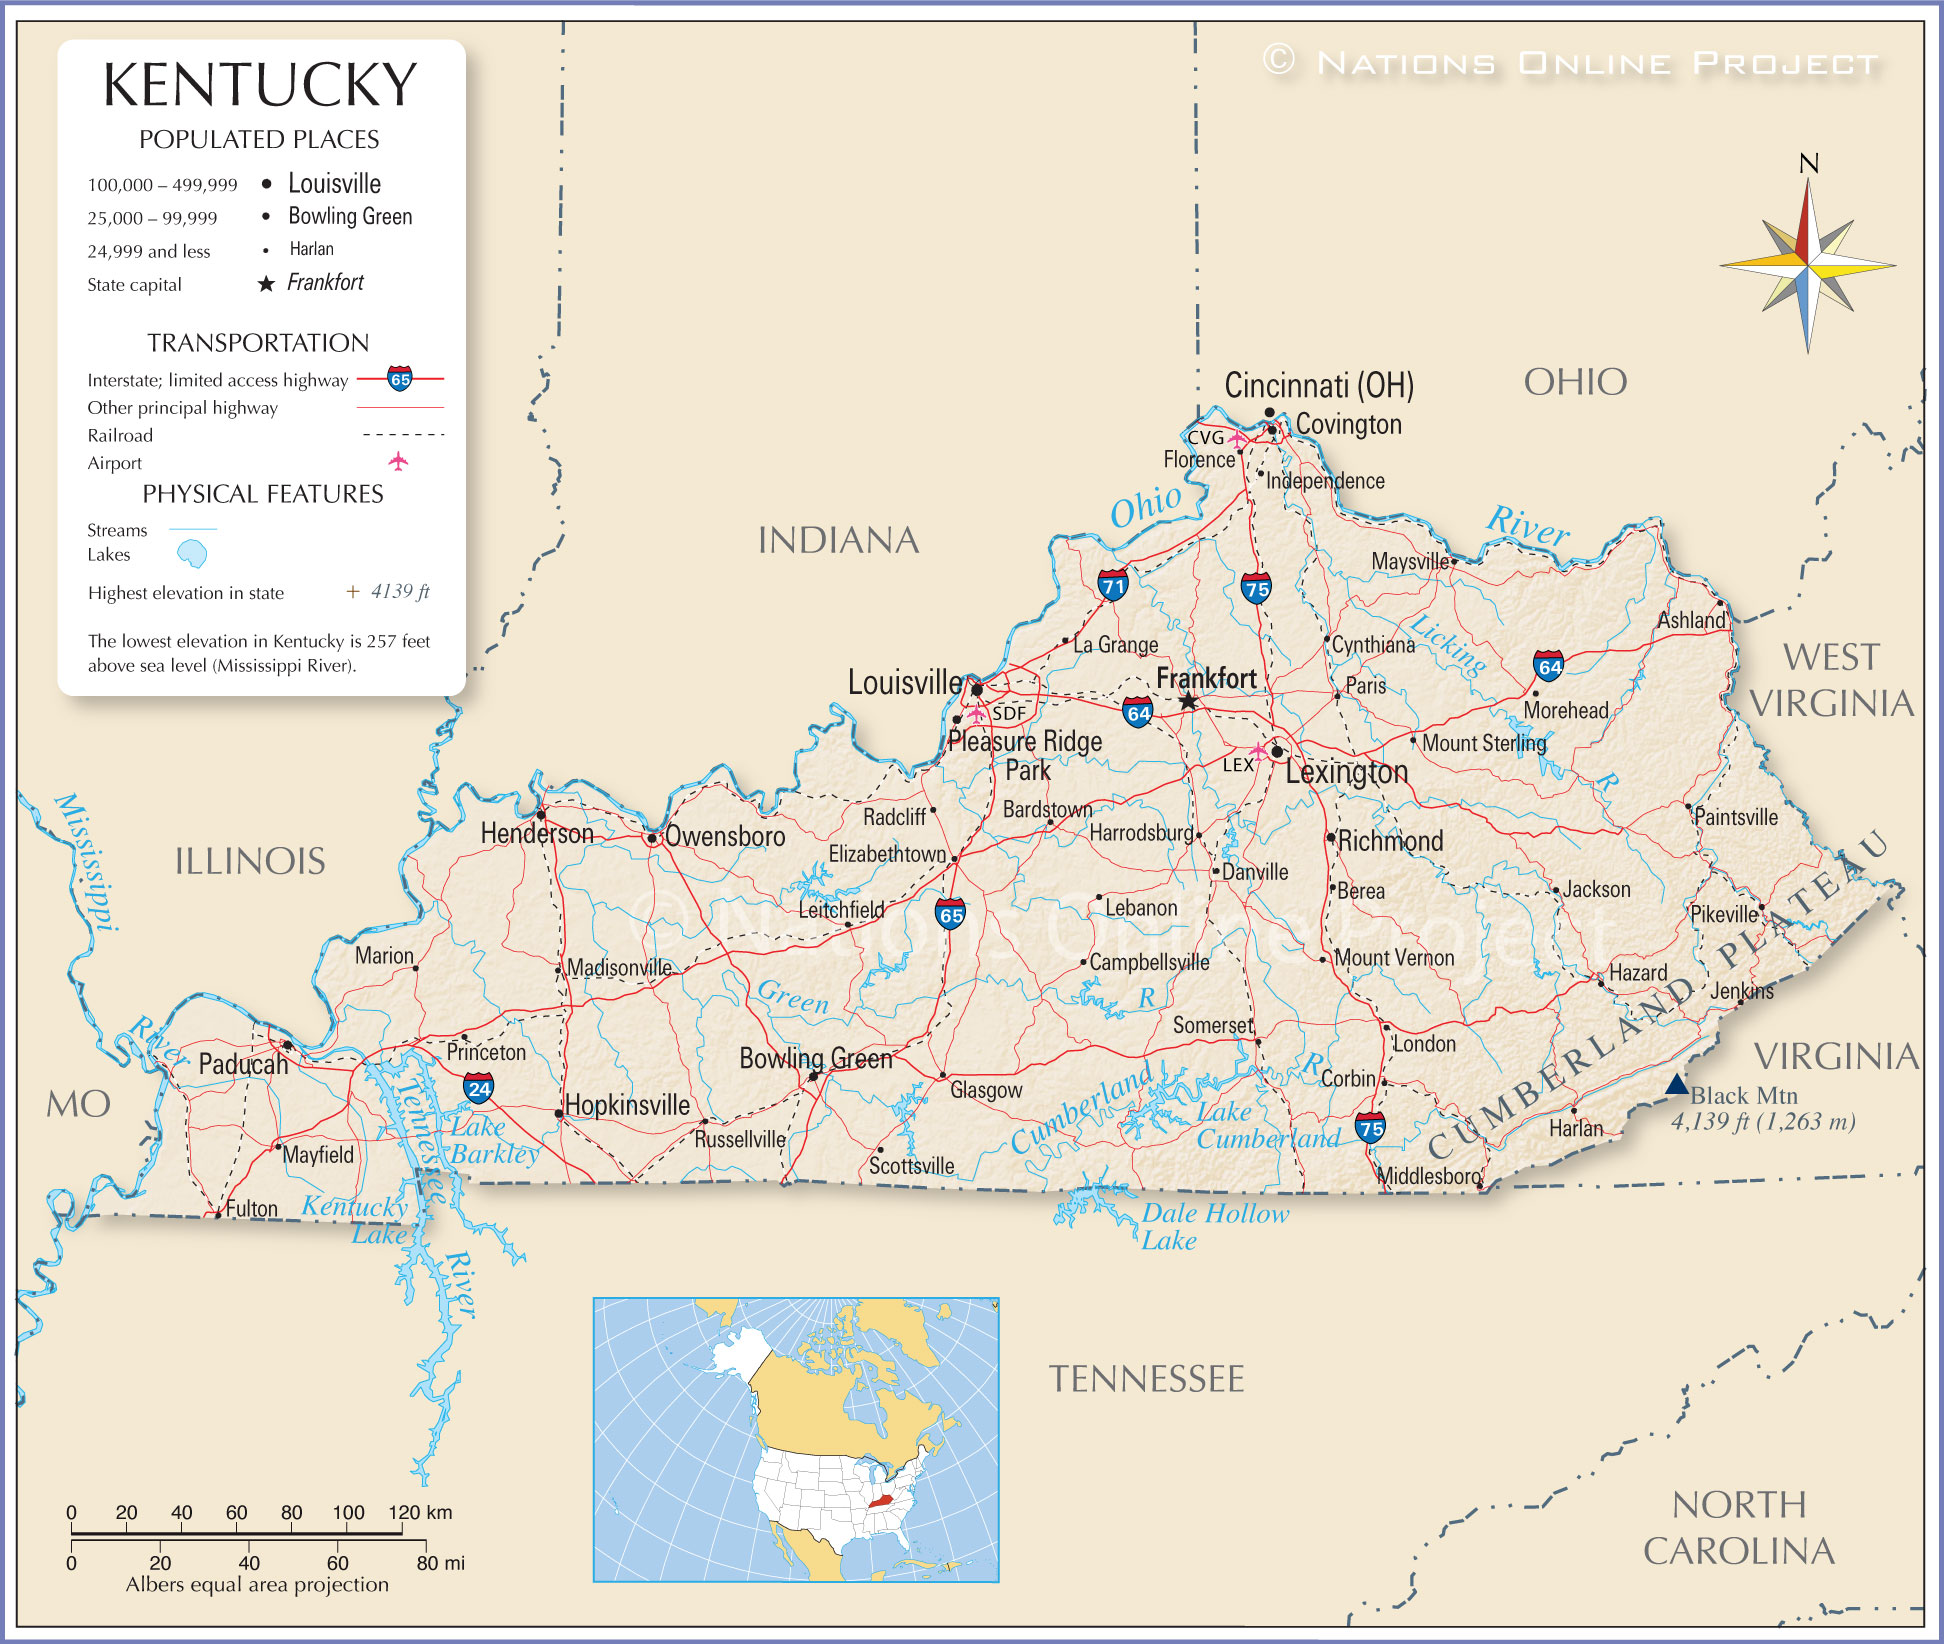 Reference Map Of Kentucky USA Nations Online Project - Eastern us airports map